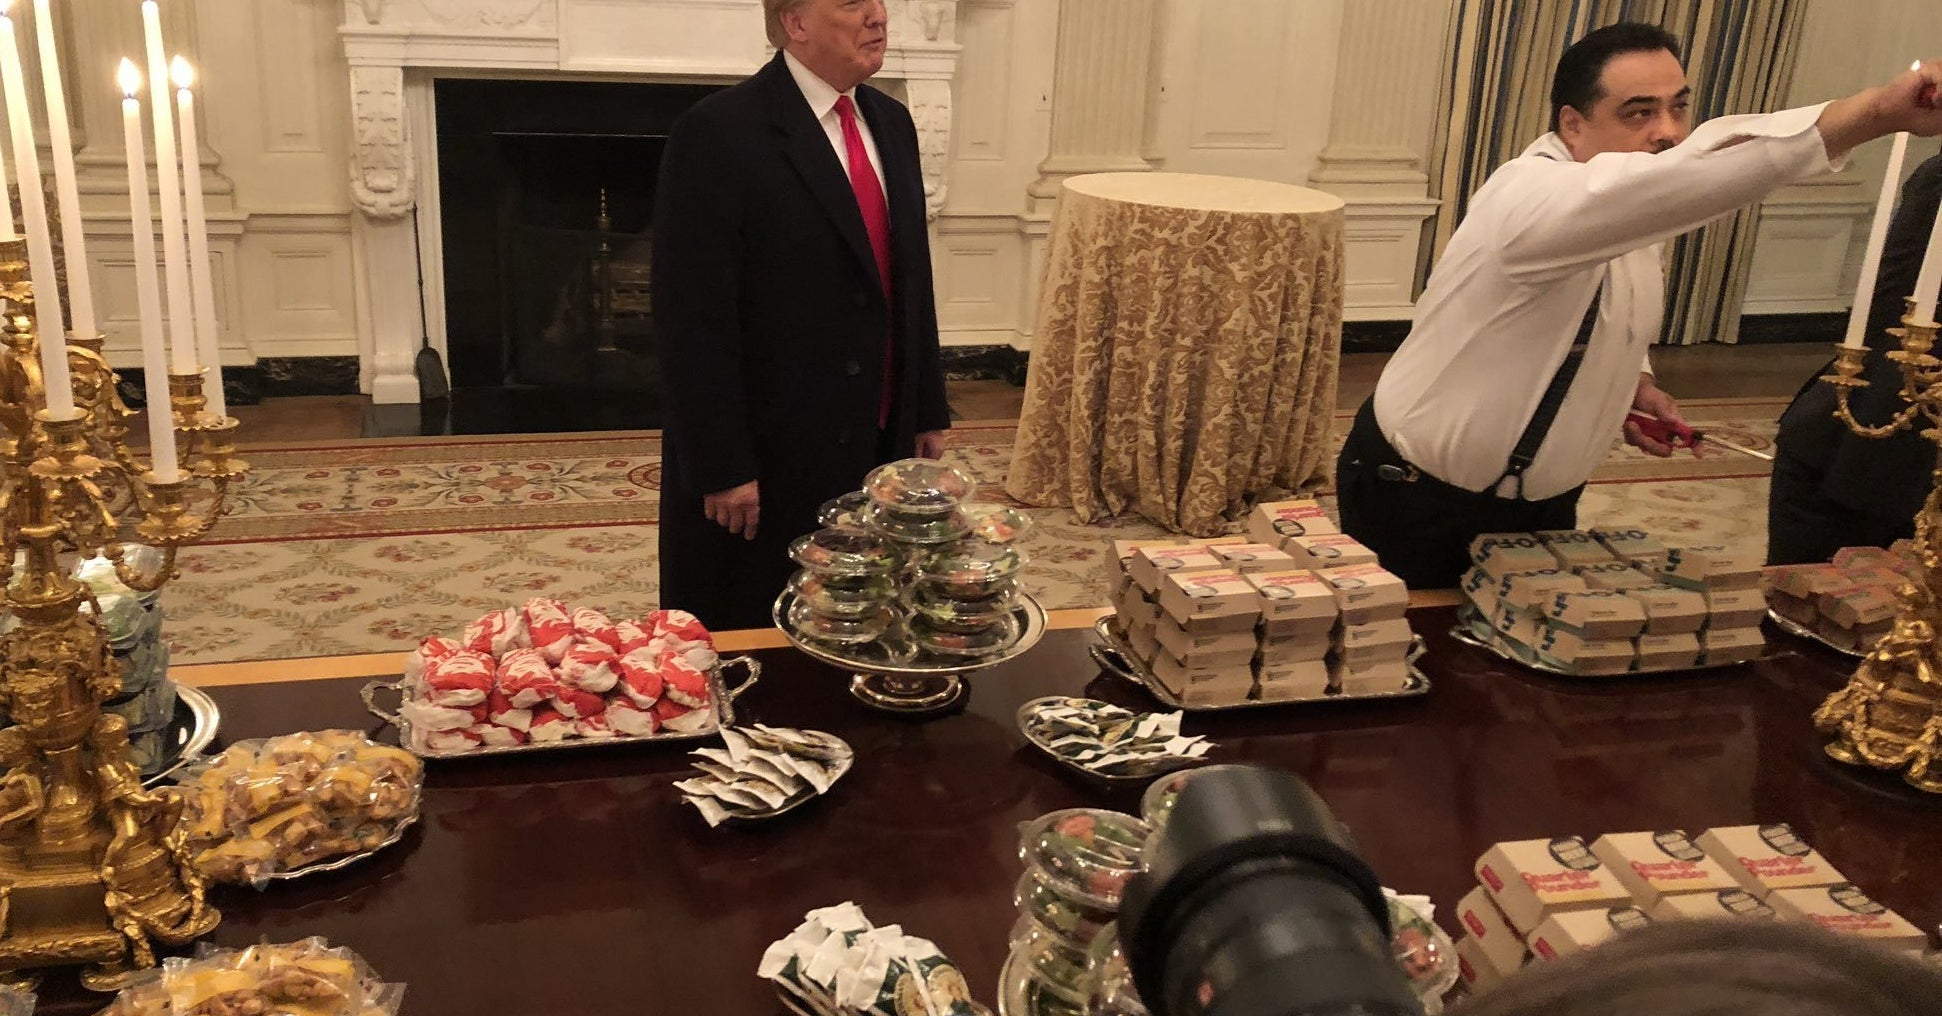 Trump Served A Fast Food Feast On Silver Platters At The White House To College Football Players